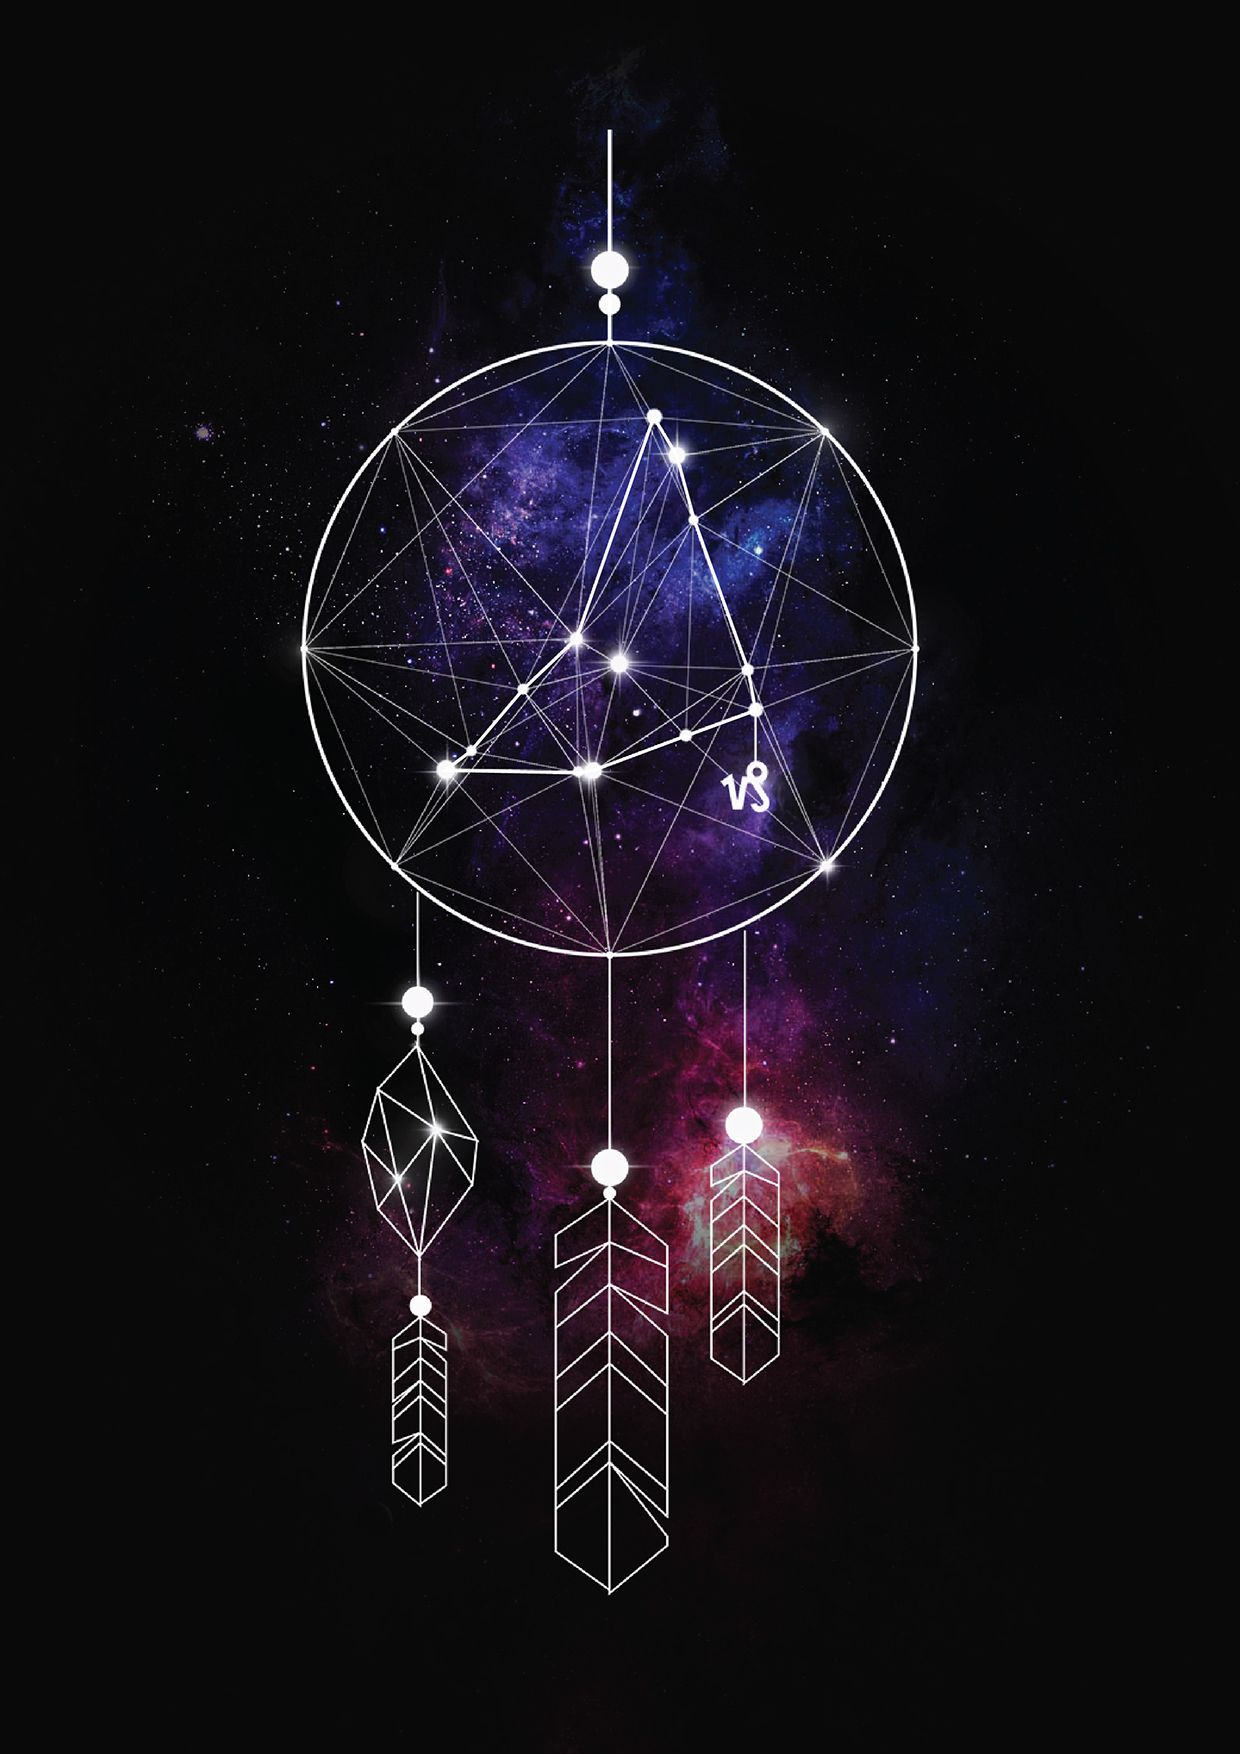 1240x1754 Dreamcatcher - Capricornus | Color insp in 2019 | Sacred ...